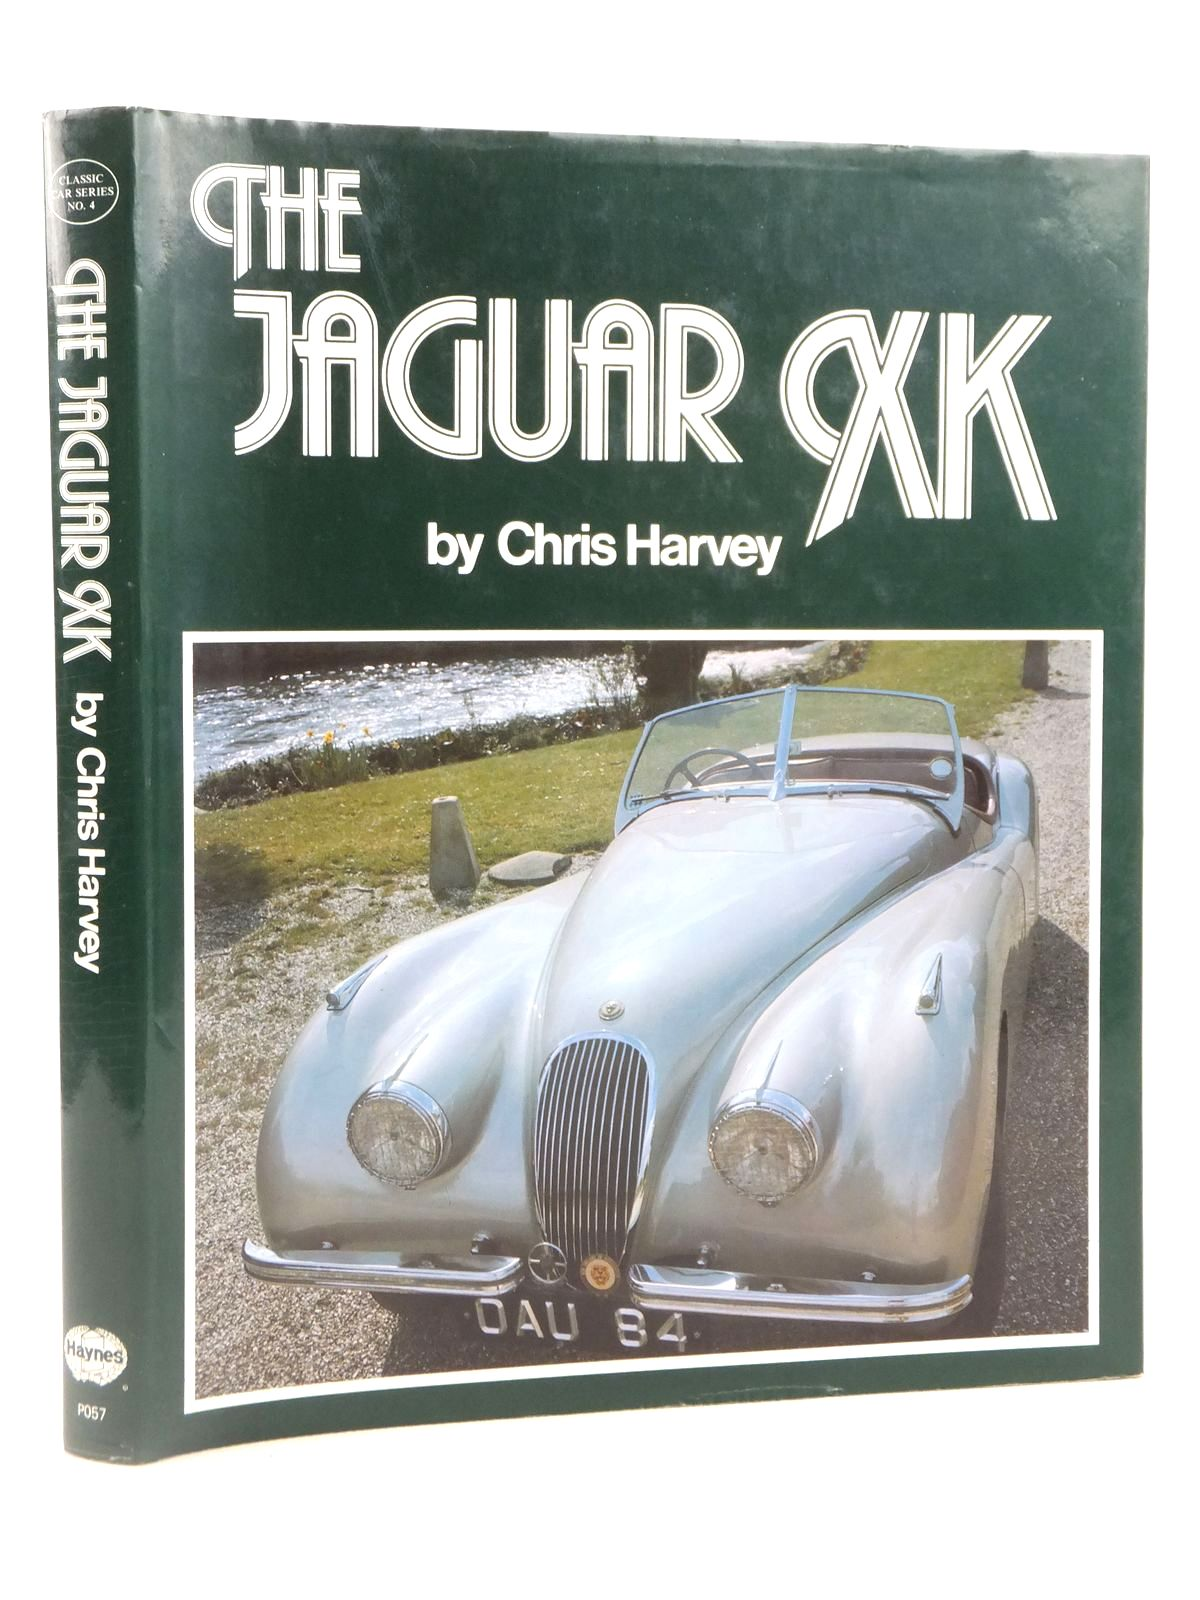 Photo of THE JAGUAR XK written by Harvey, Chris published by The Oxford Illustrated Press (STOCK CODE: 1608884)  for sale by Stella & Rose's Books